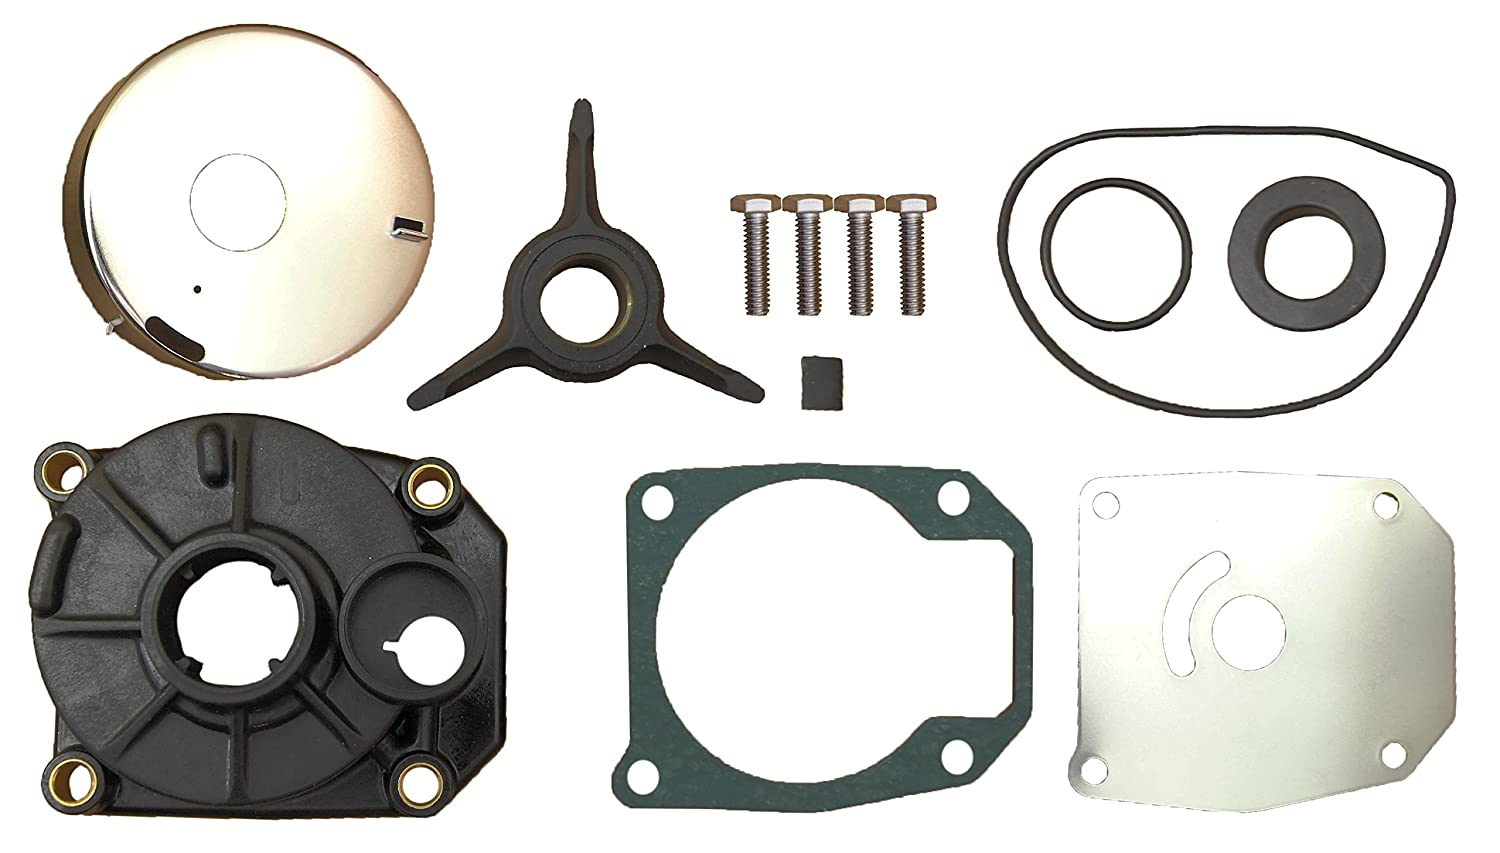 Water Pump Impeller Repair Kit for Johnson Evinrude Outboards Replaces 433548